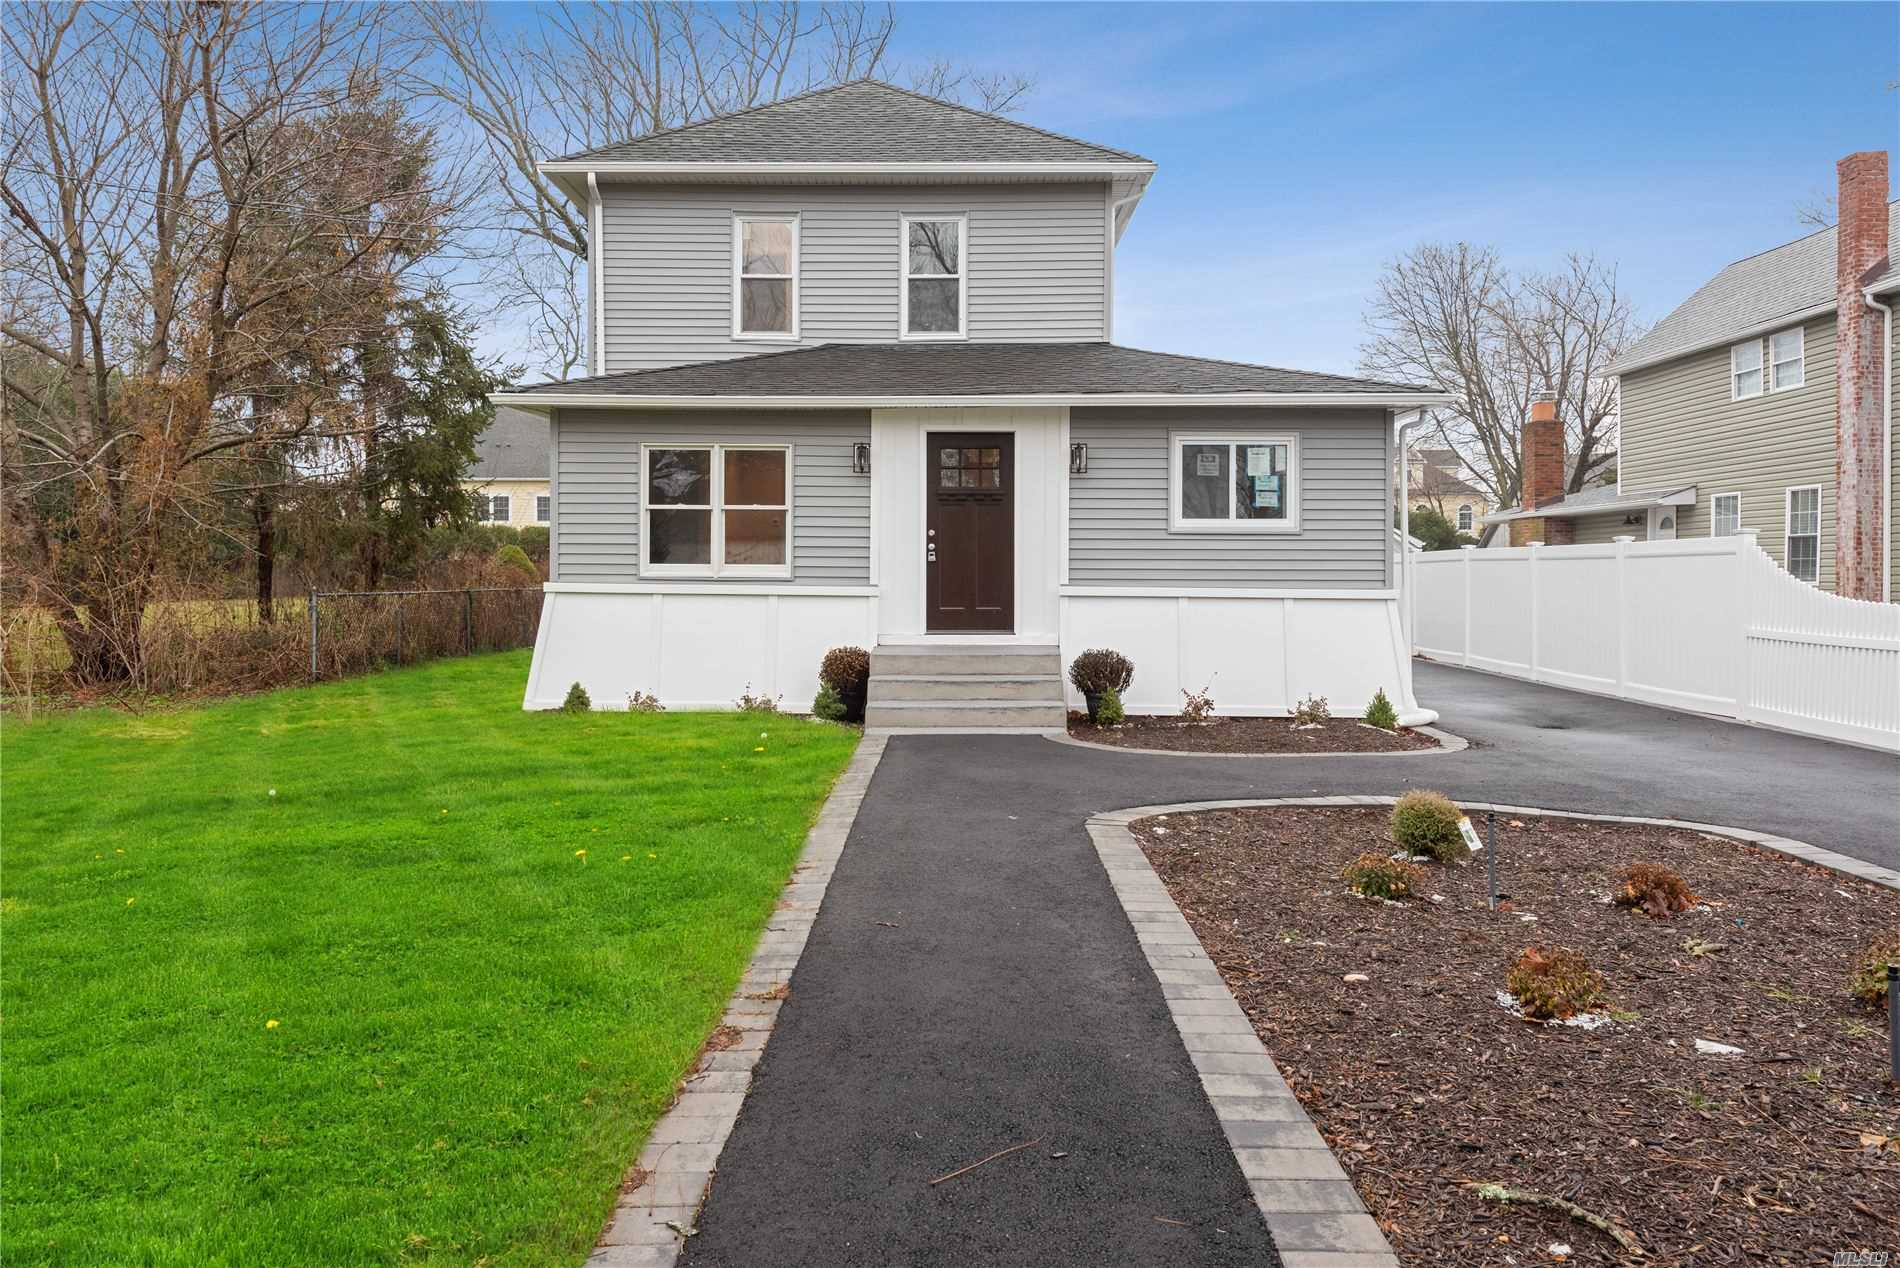 49 Furman Ln - Patchogue, New York